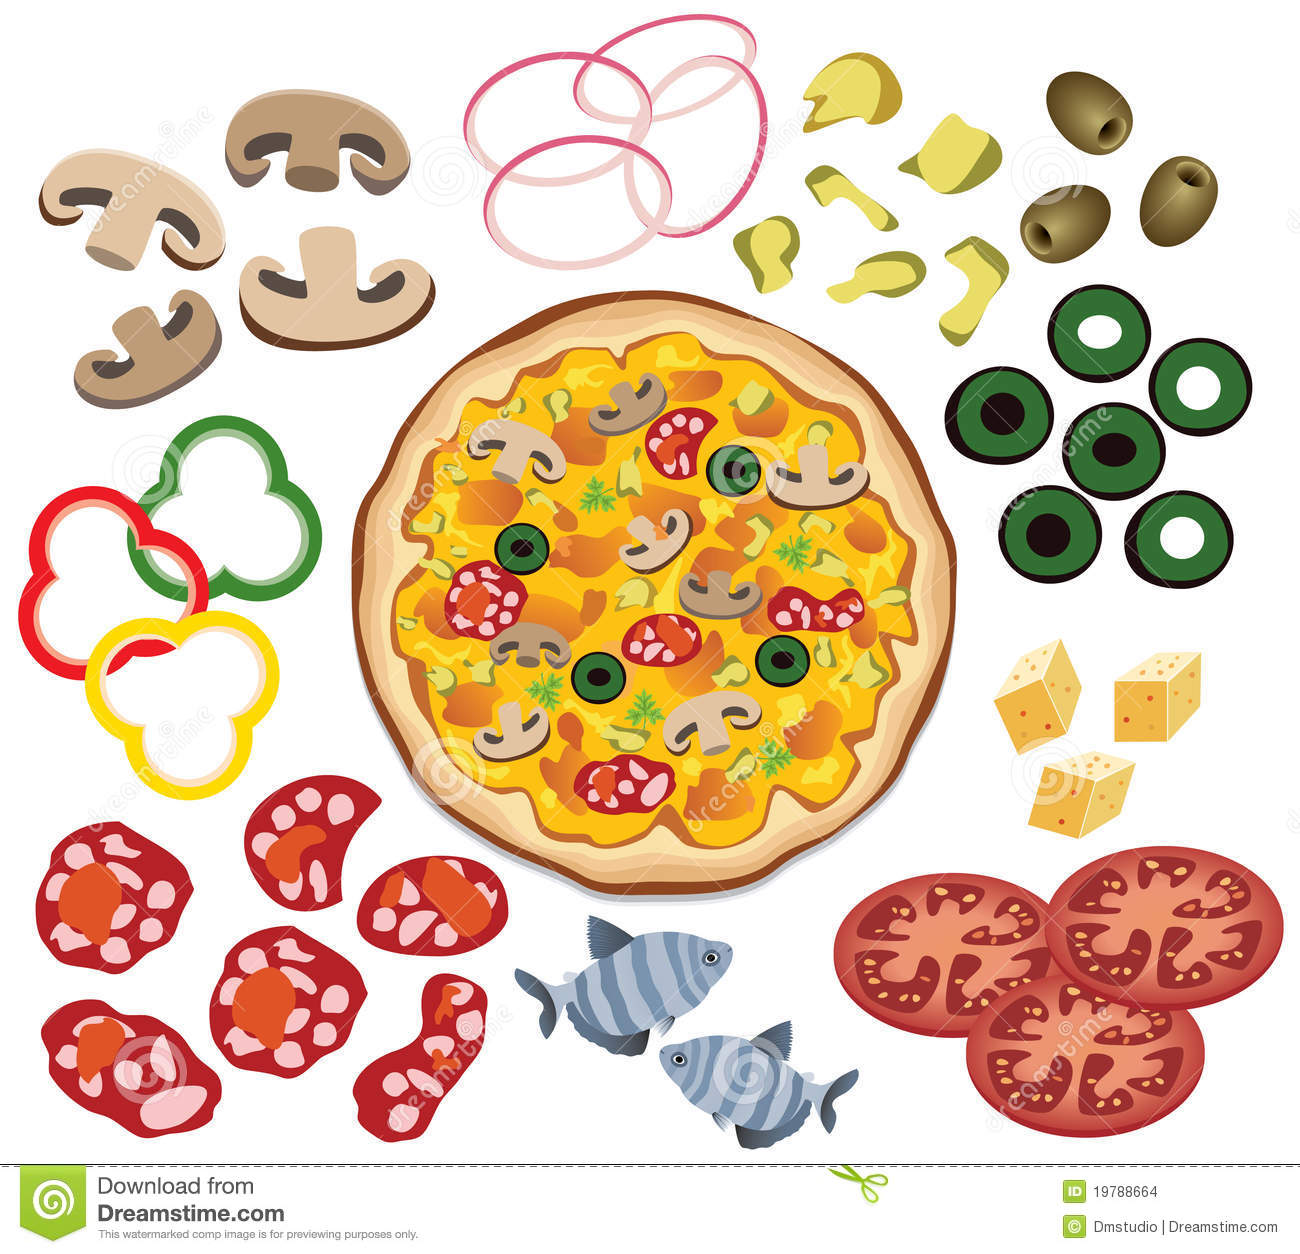 Pizza Toppings Clipart 72831 Zwallpix-Pizza Toppings Clipart 72831 Zwallpix-12